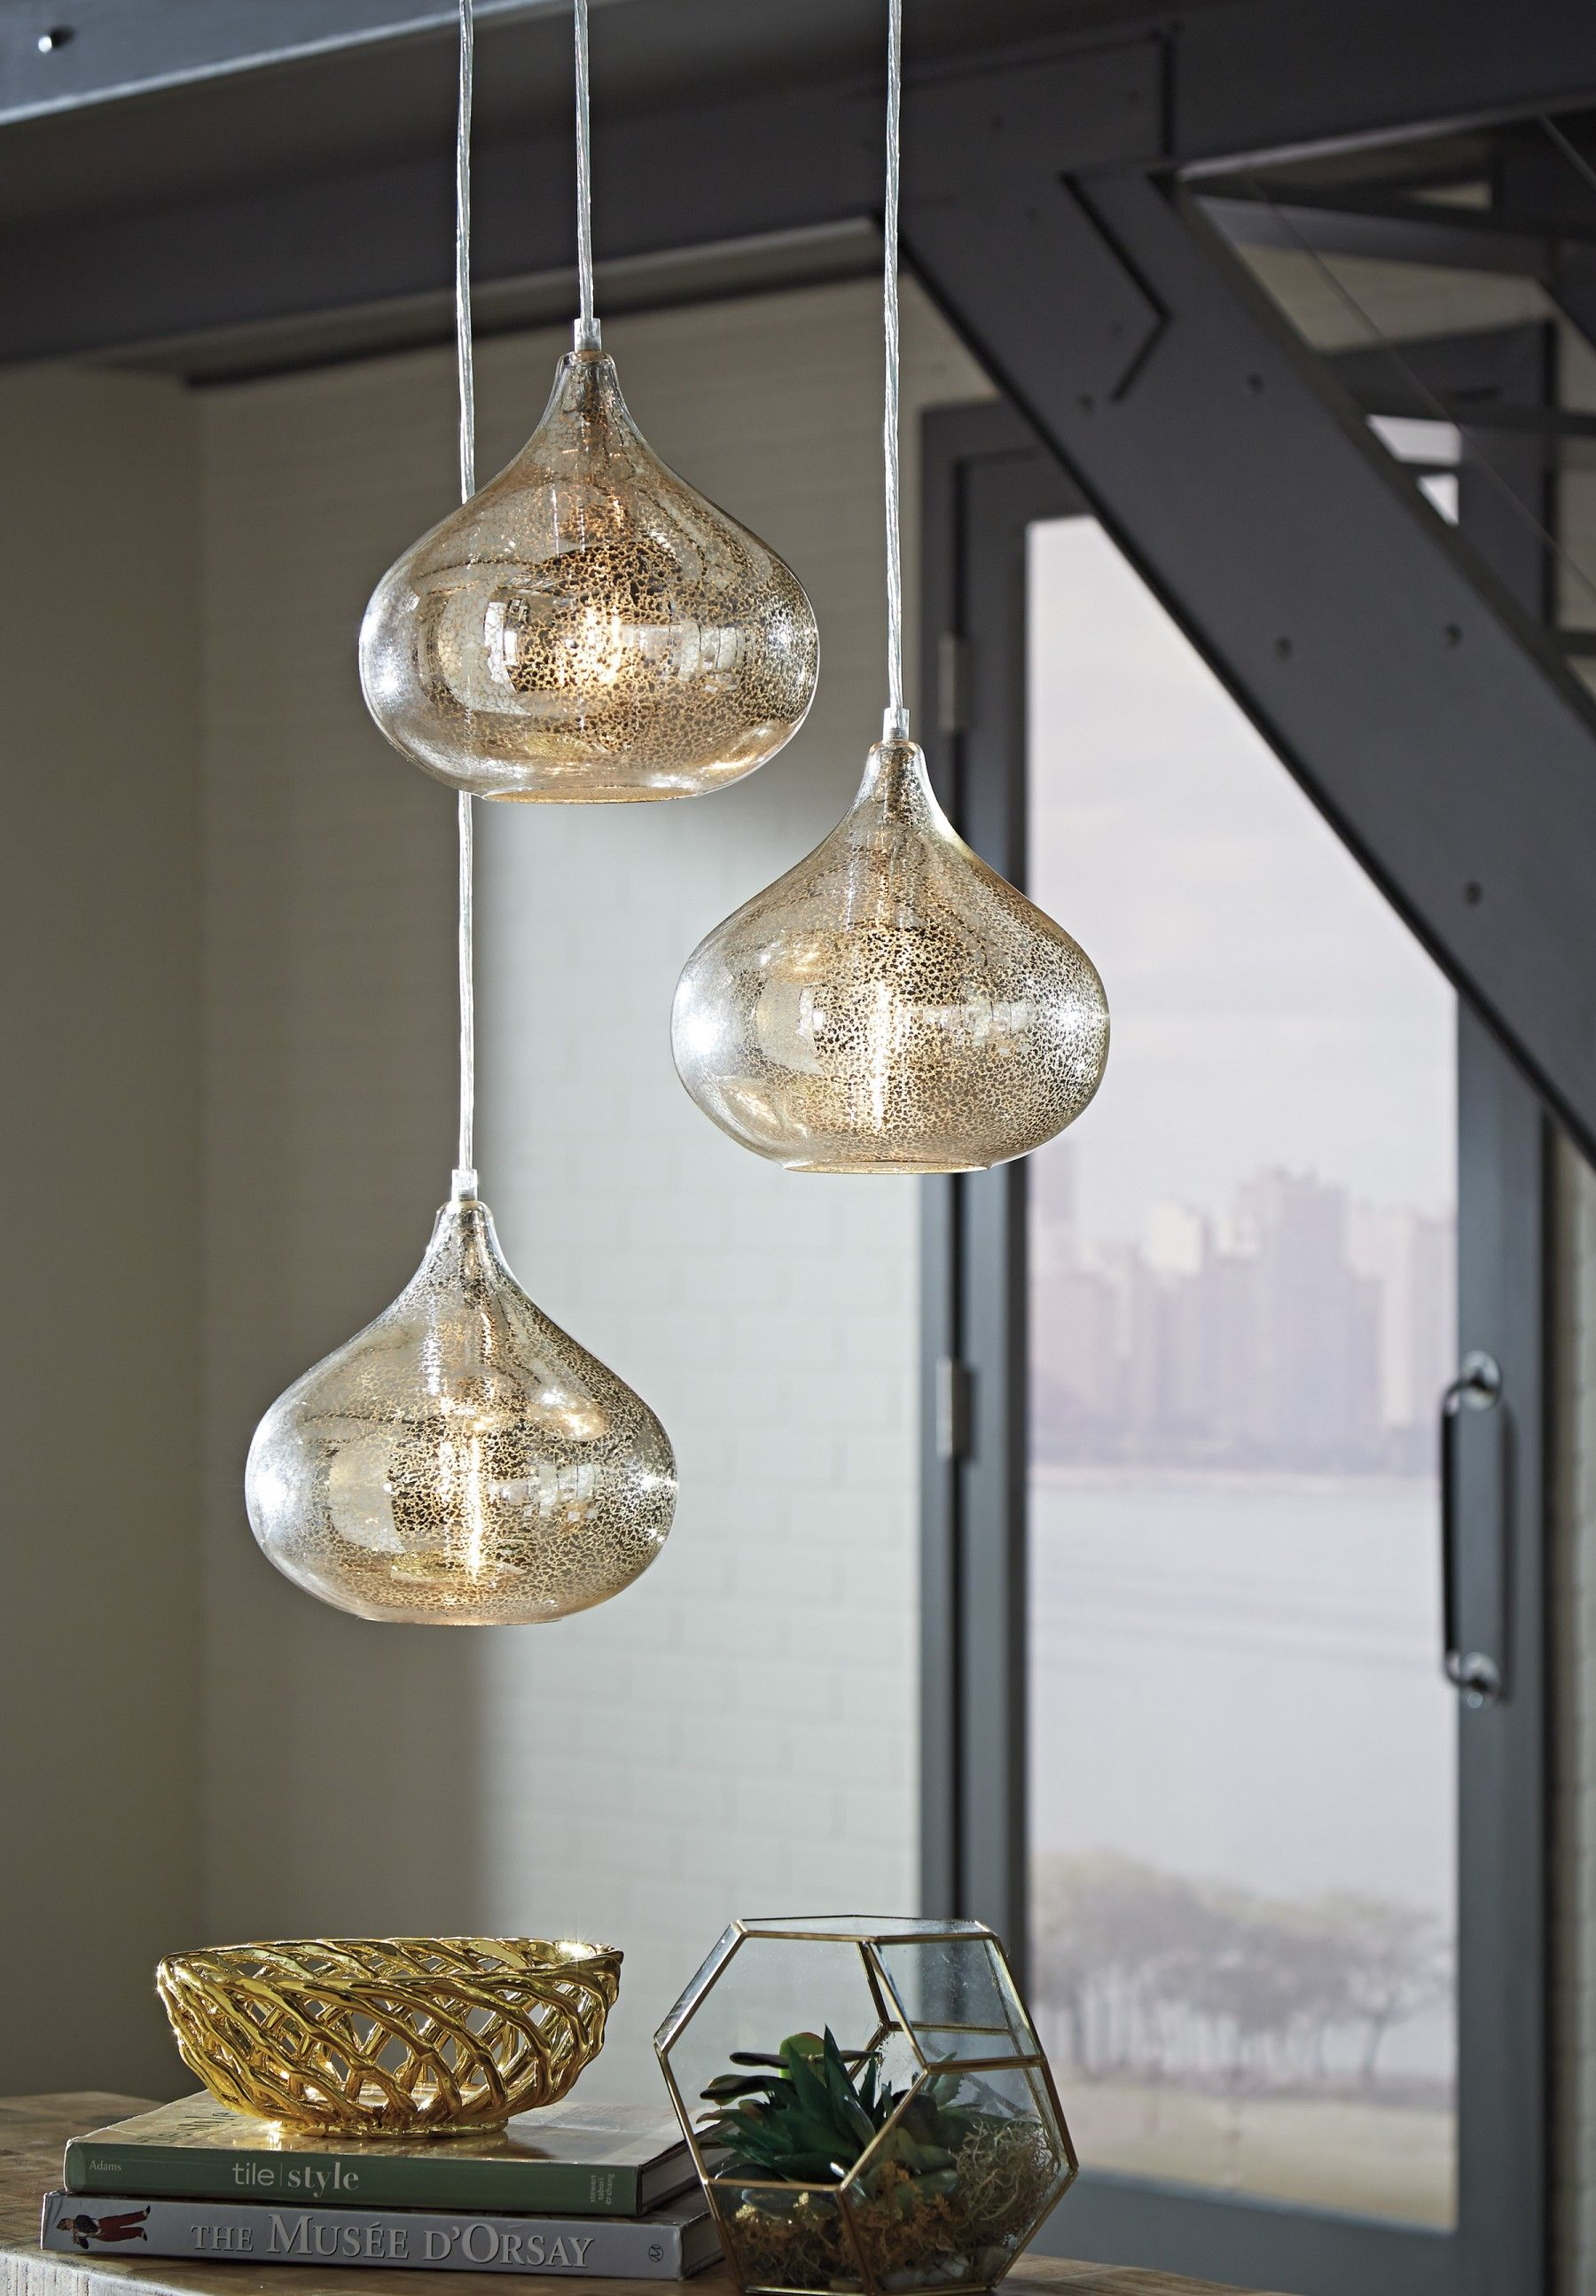 medium gla loaf ran other pl pendant cowbell pendants with lamp glass products